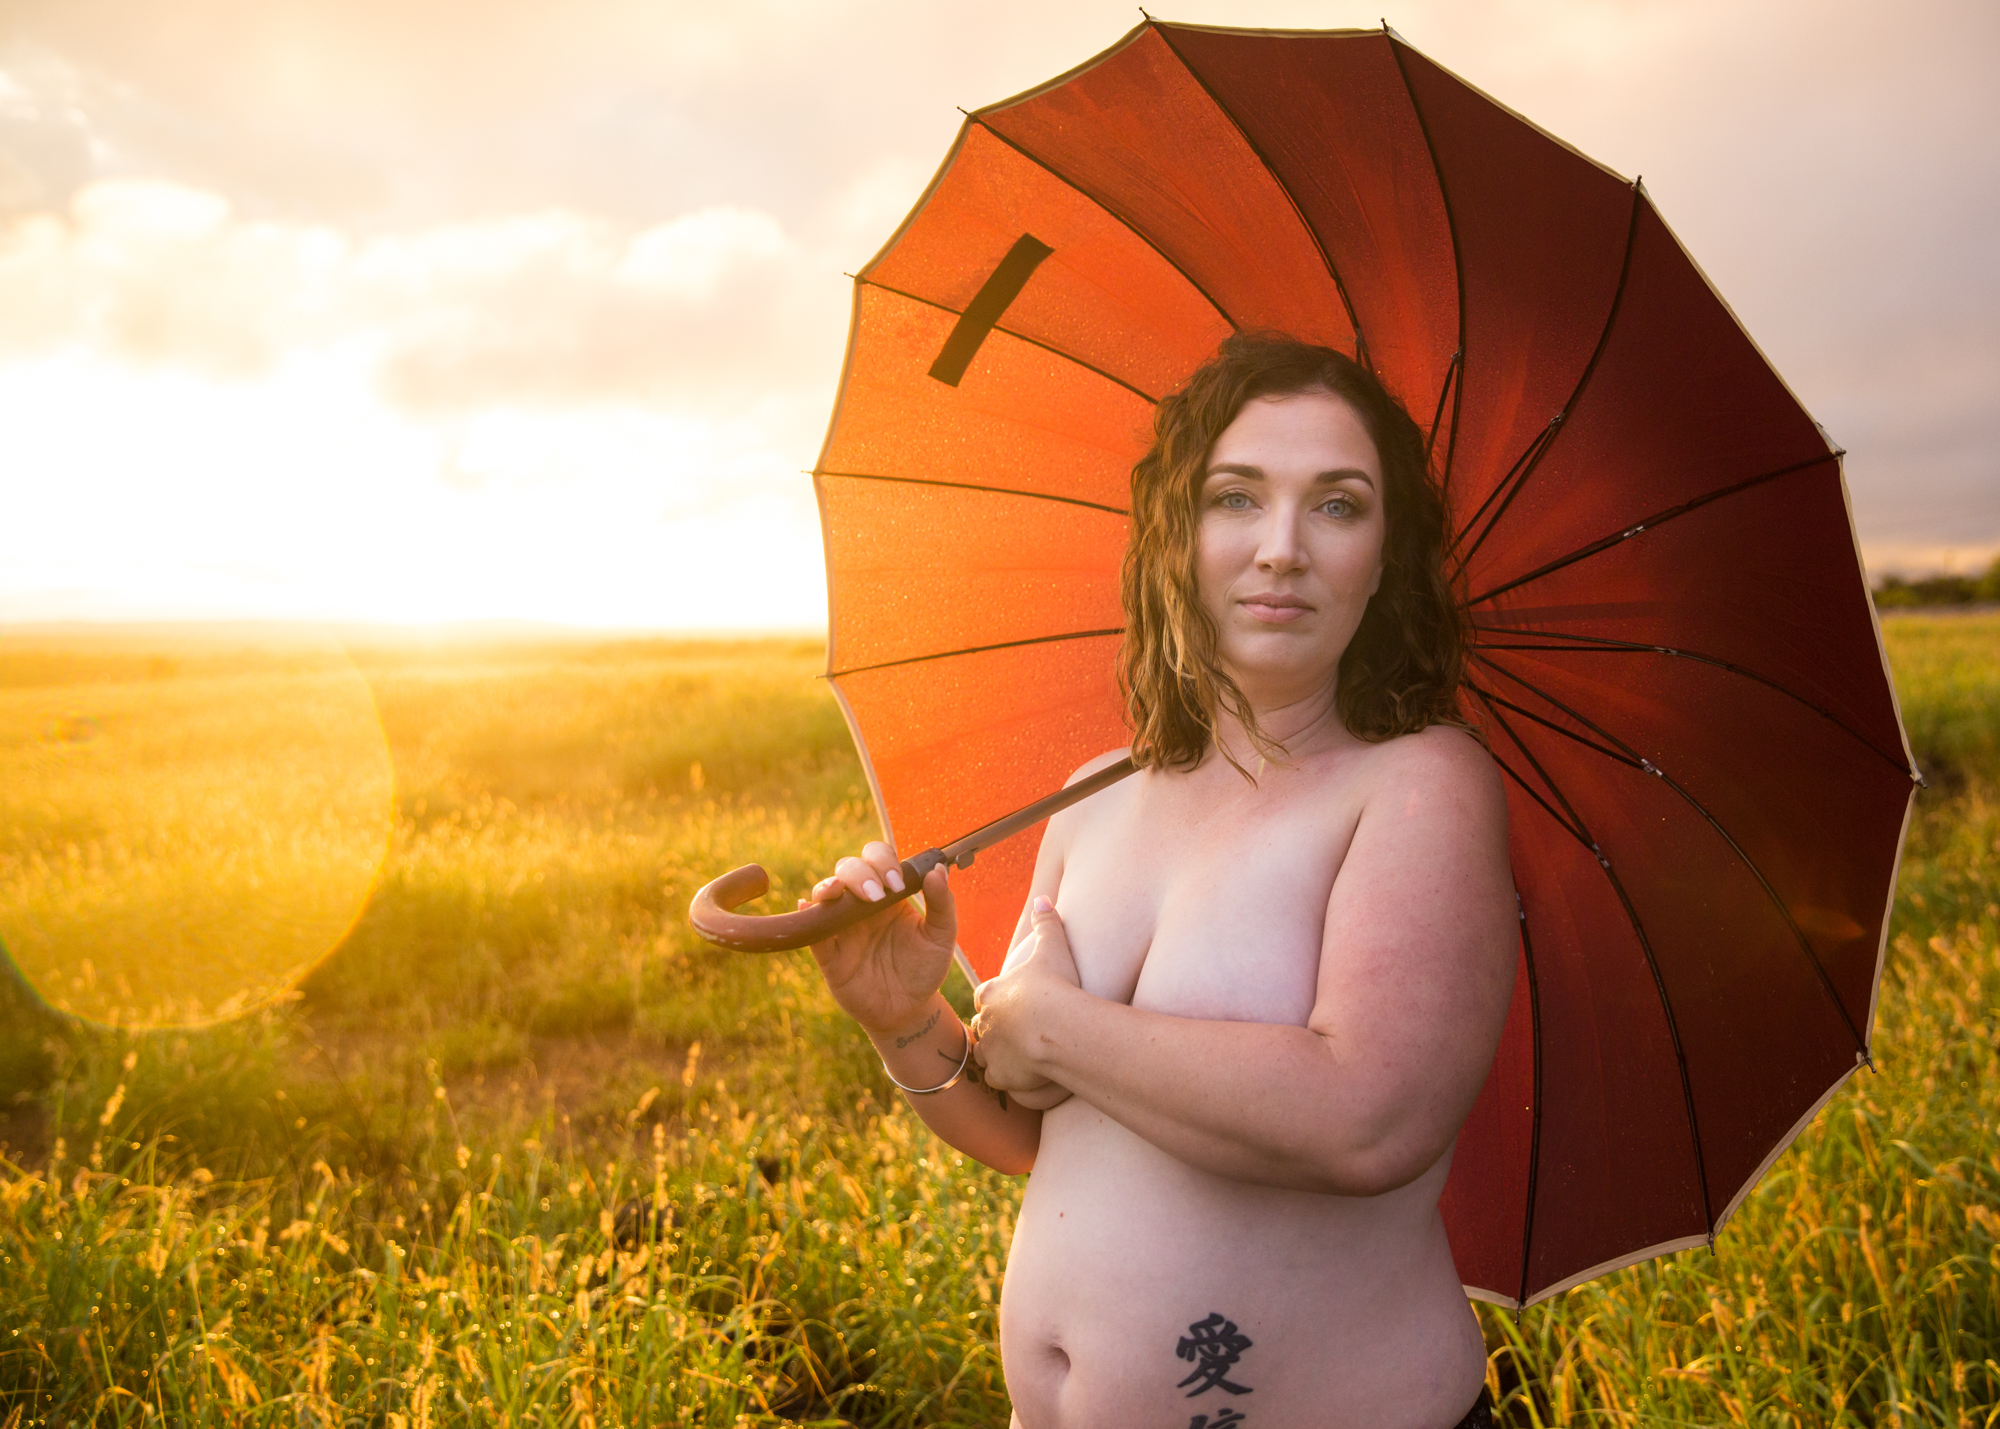 """I really love my body at any size and how strong and capable it is. I would describe my relationship with my body as very good. I had a mother who never didn't not like her body and that really helped. Being comfortable with who you are is not defined by size."" - - emily mills📷 deelightful photography"